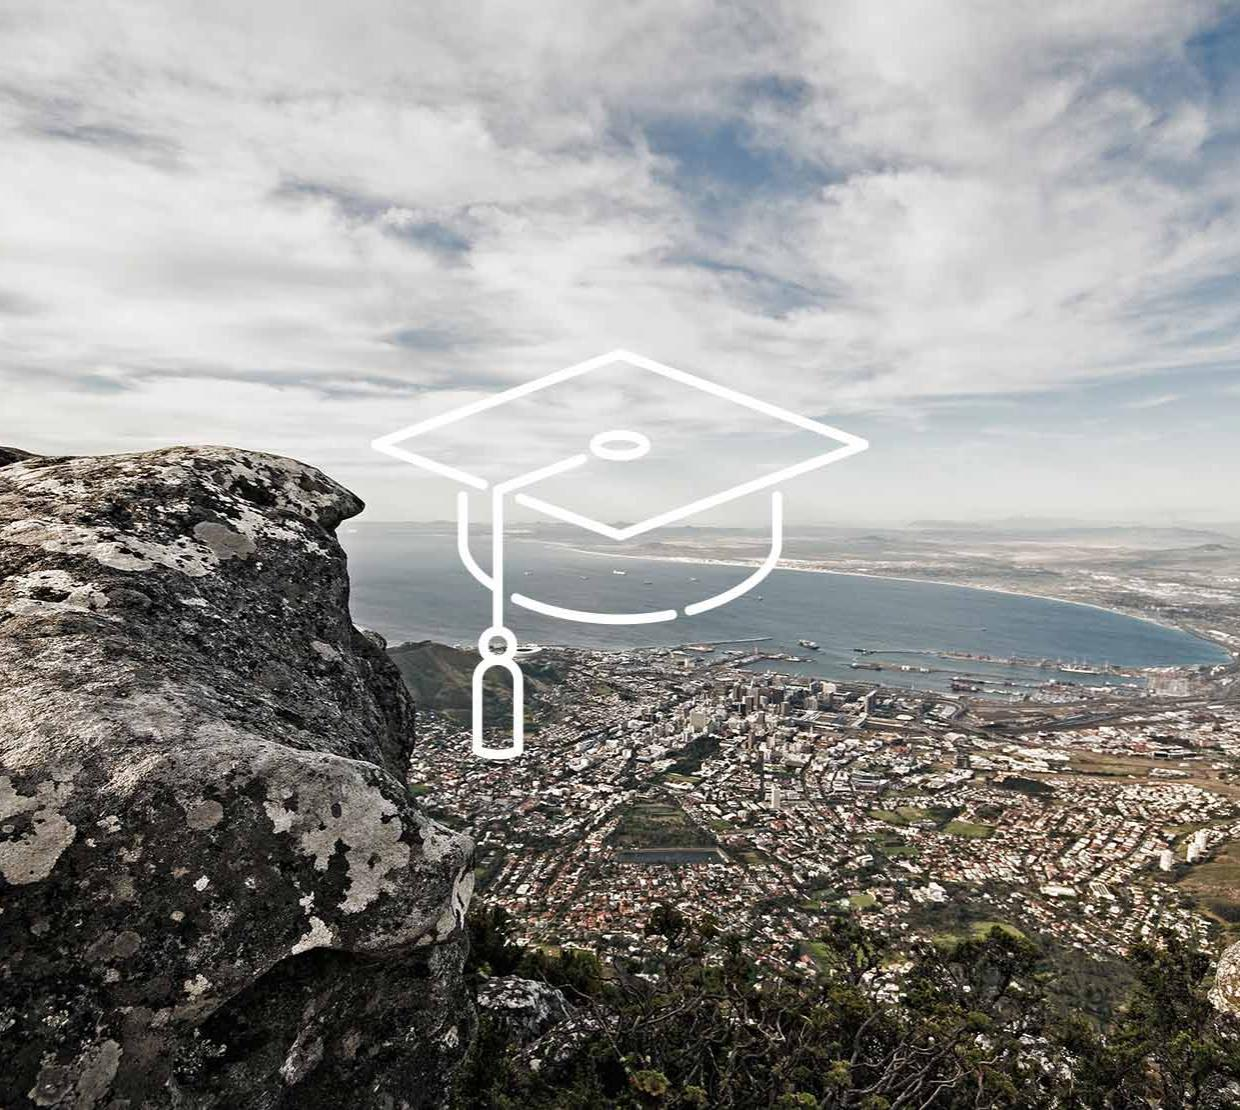 Graduation cap icon above South Africa coastal city